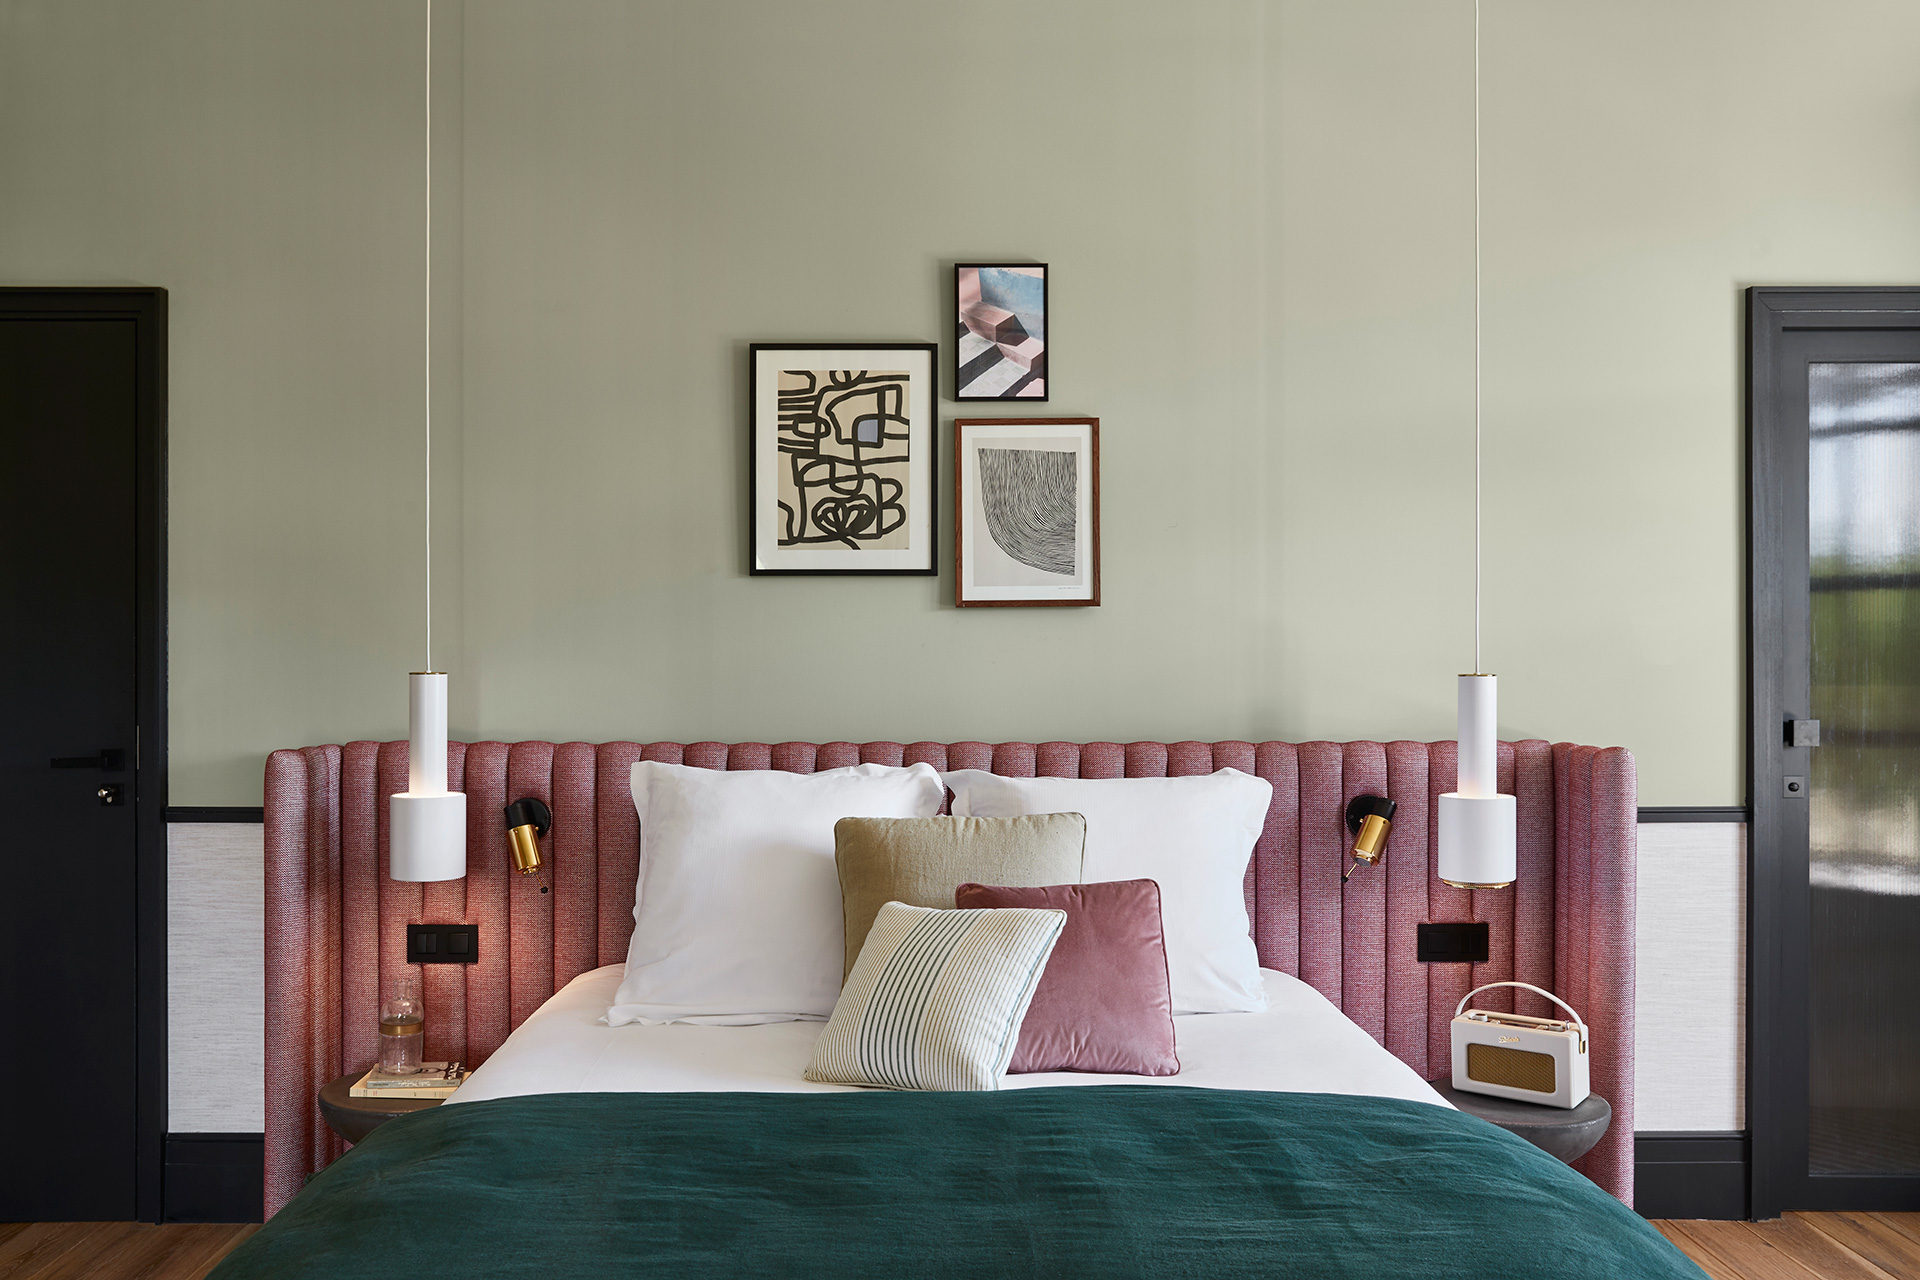 A bedroom at the Ultimate Provence hotel | Ultimate Provence | Humbert and Poyet | STIRworld